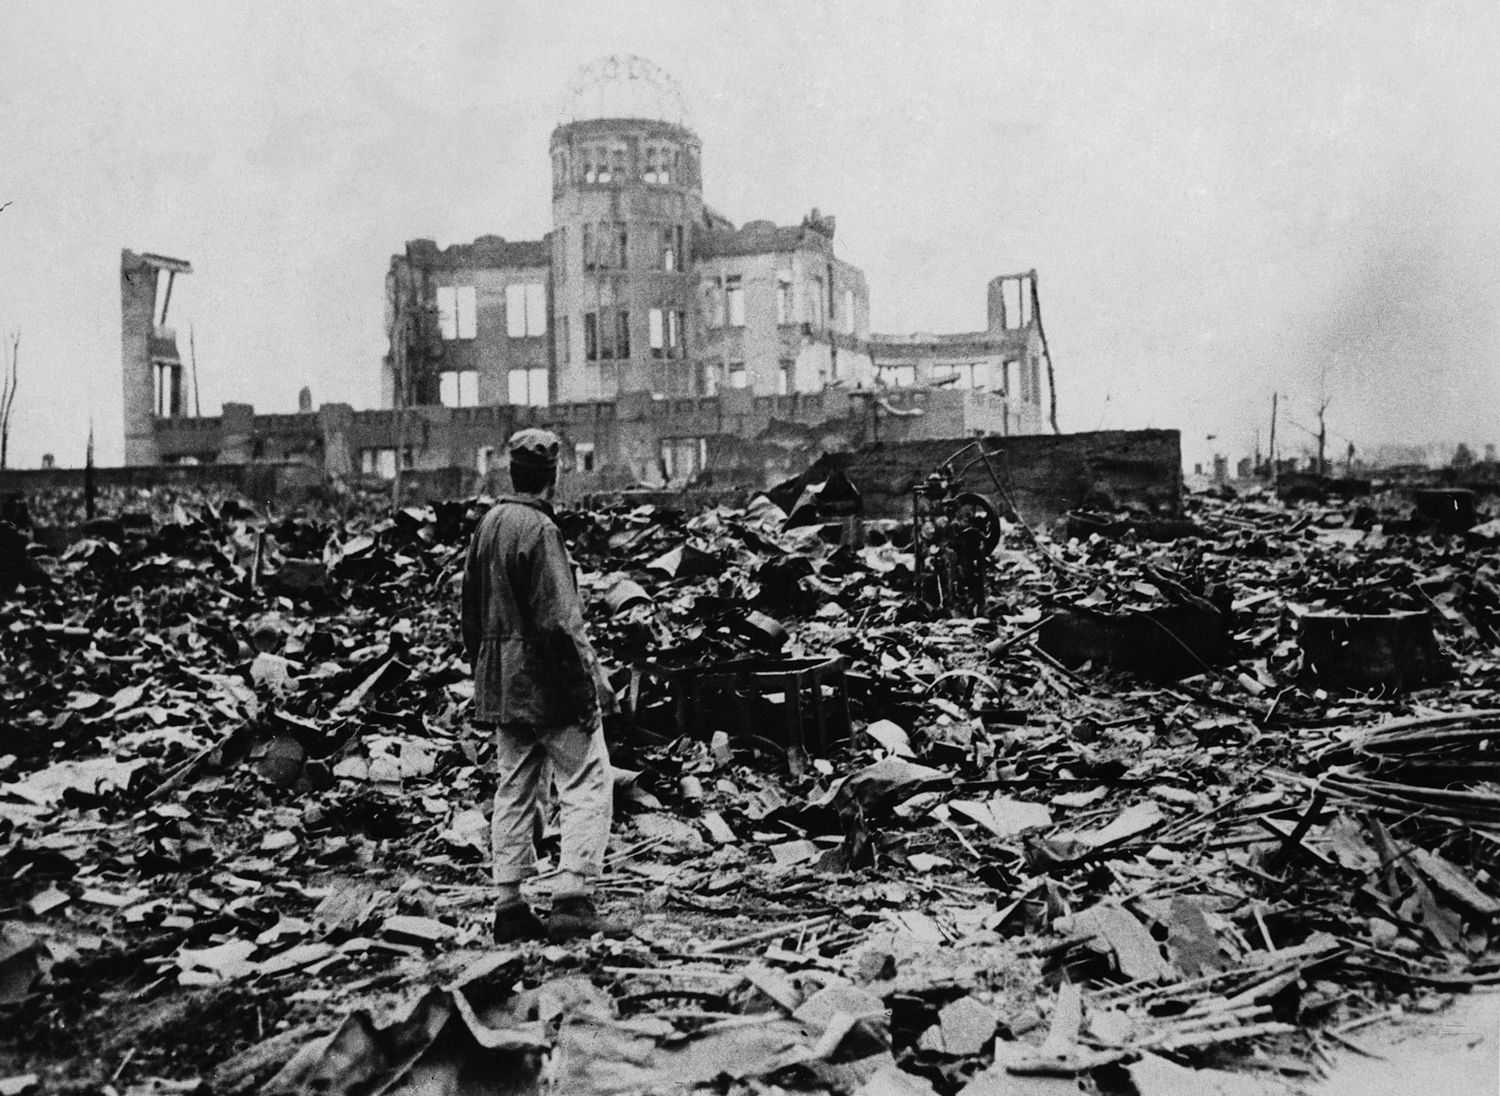 1940s- In 1945, The US dropped an atomic bomb on the Japanese city Hiroshima, some say which ignited the start of the Cold War. The atomic bomb development by the United States adds to the arms race for nuclear power between world powers including Soviet Union and Germany.